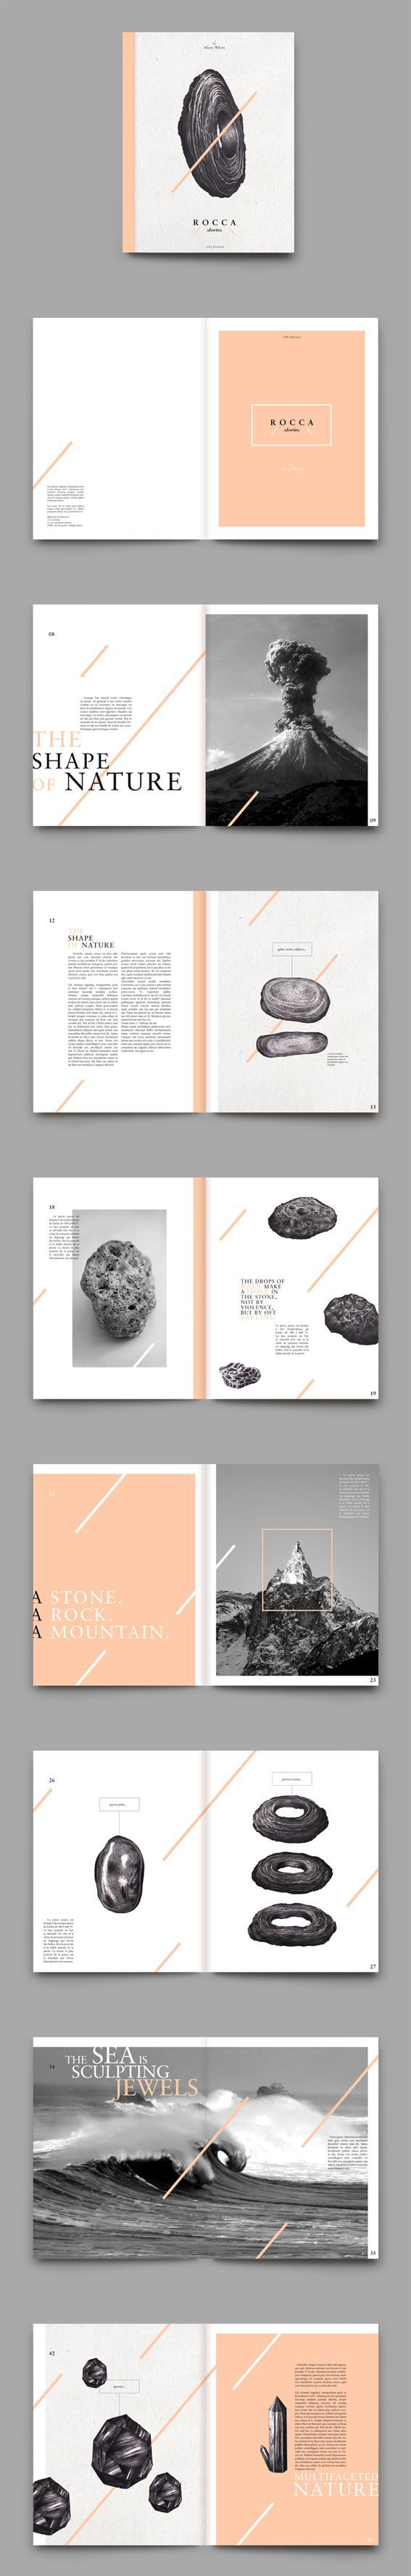 R O C C A stories / magazine layout design | Magazine Editorial ...